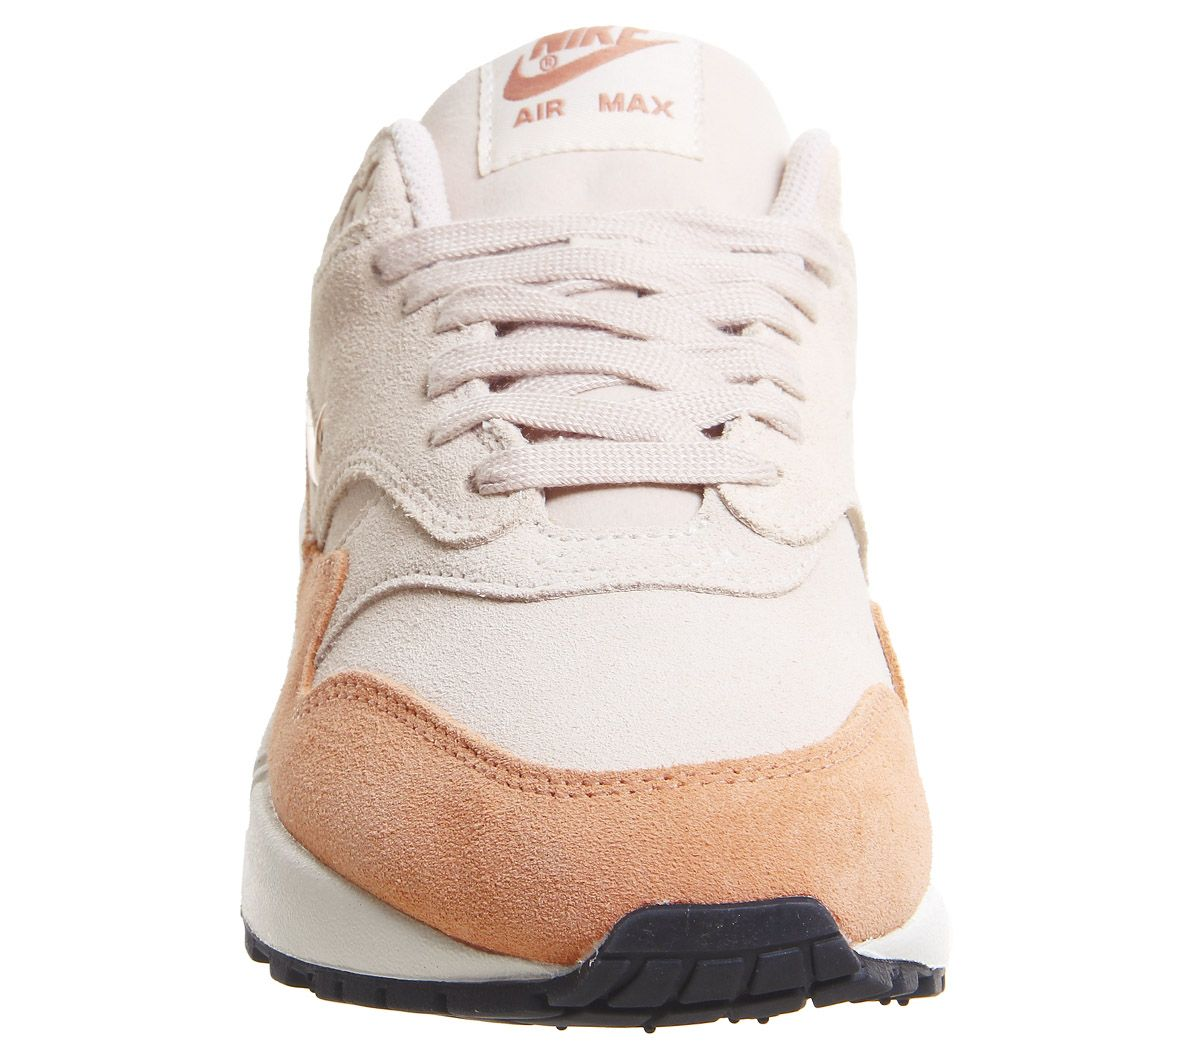 ff4c59b00532f Nike Air Max 1 Jewel Trainers Guava Ice Bronze White F - Hers trainers